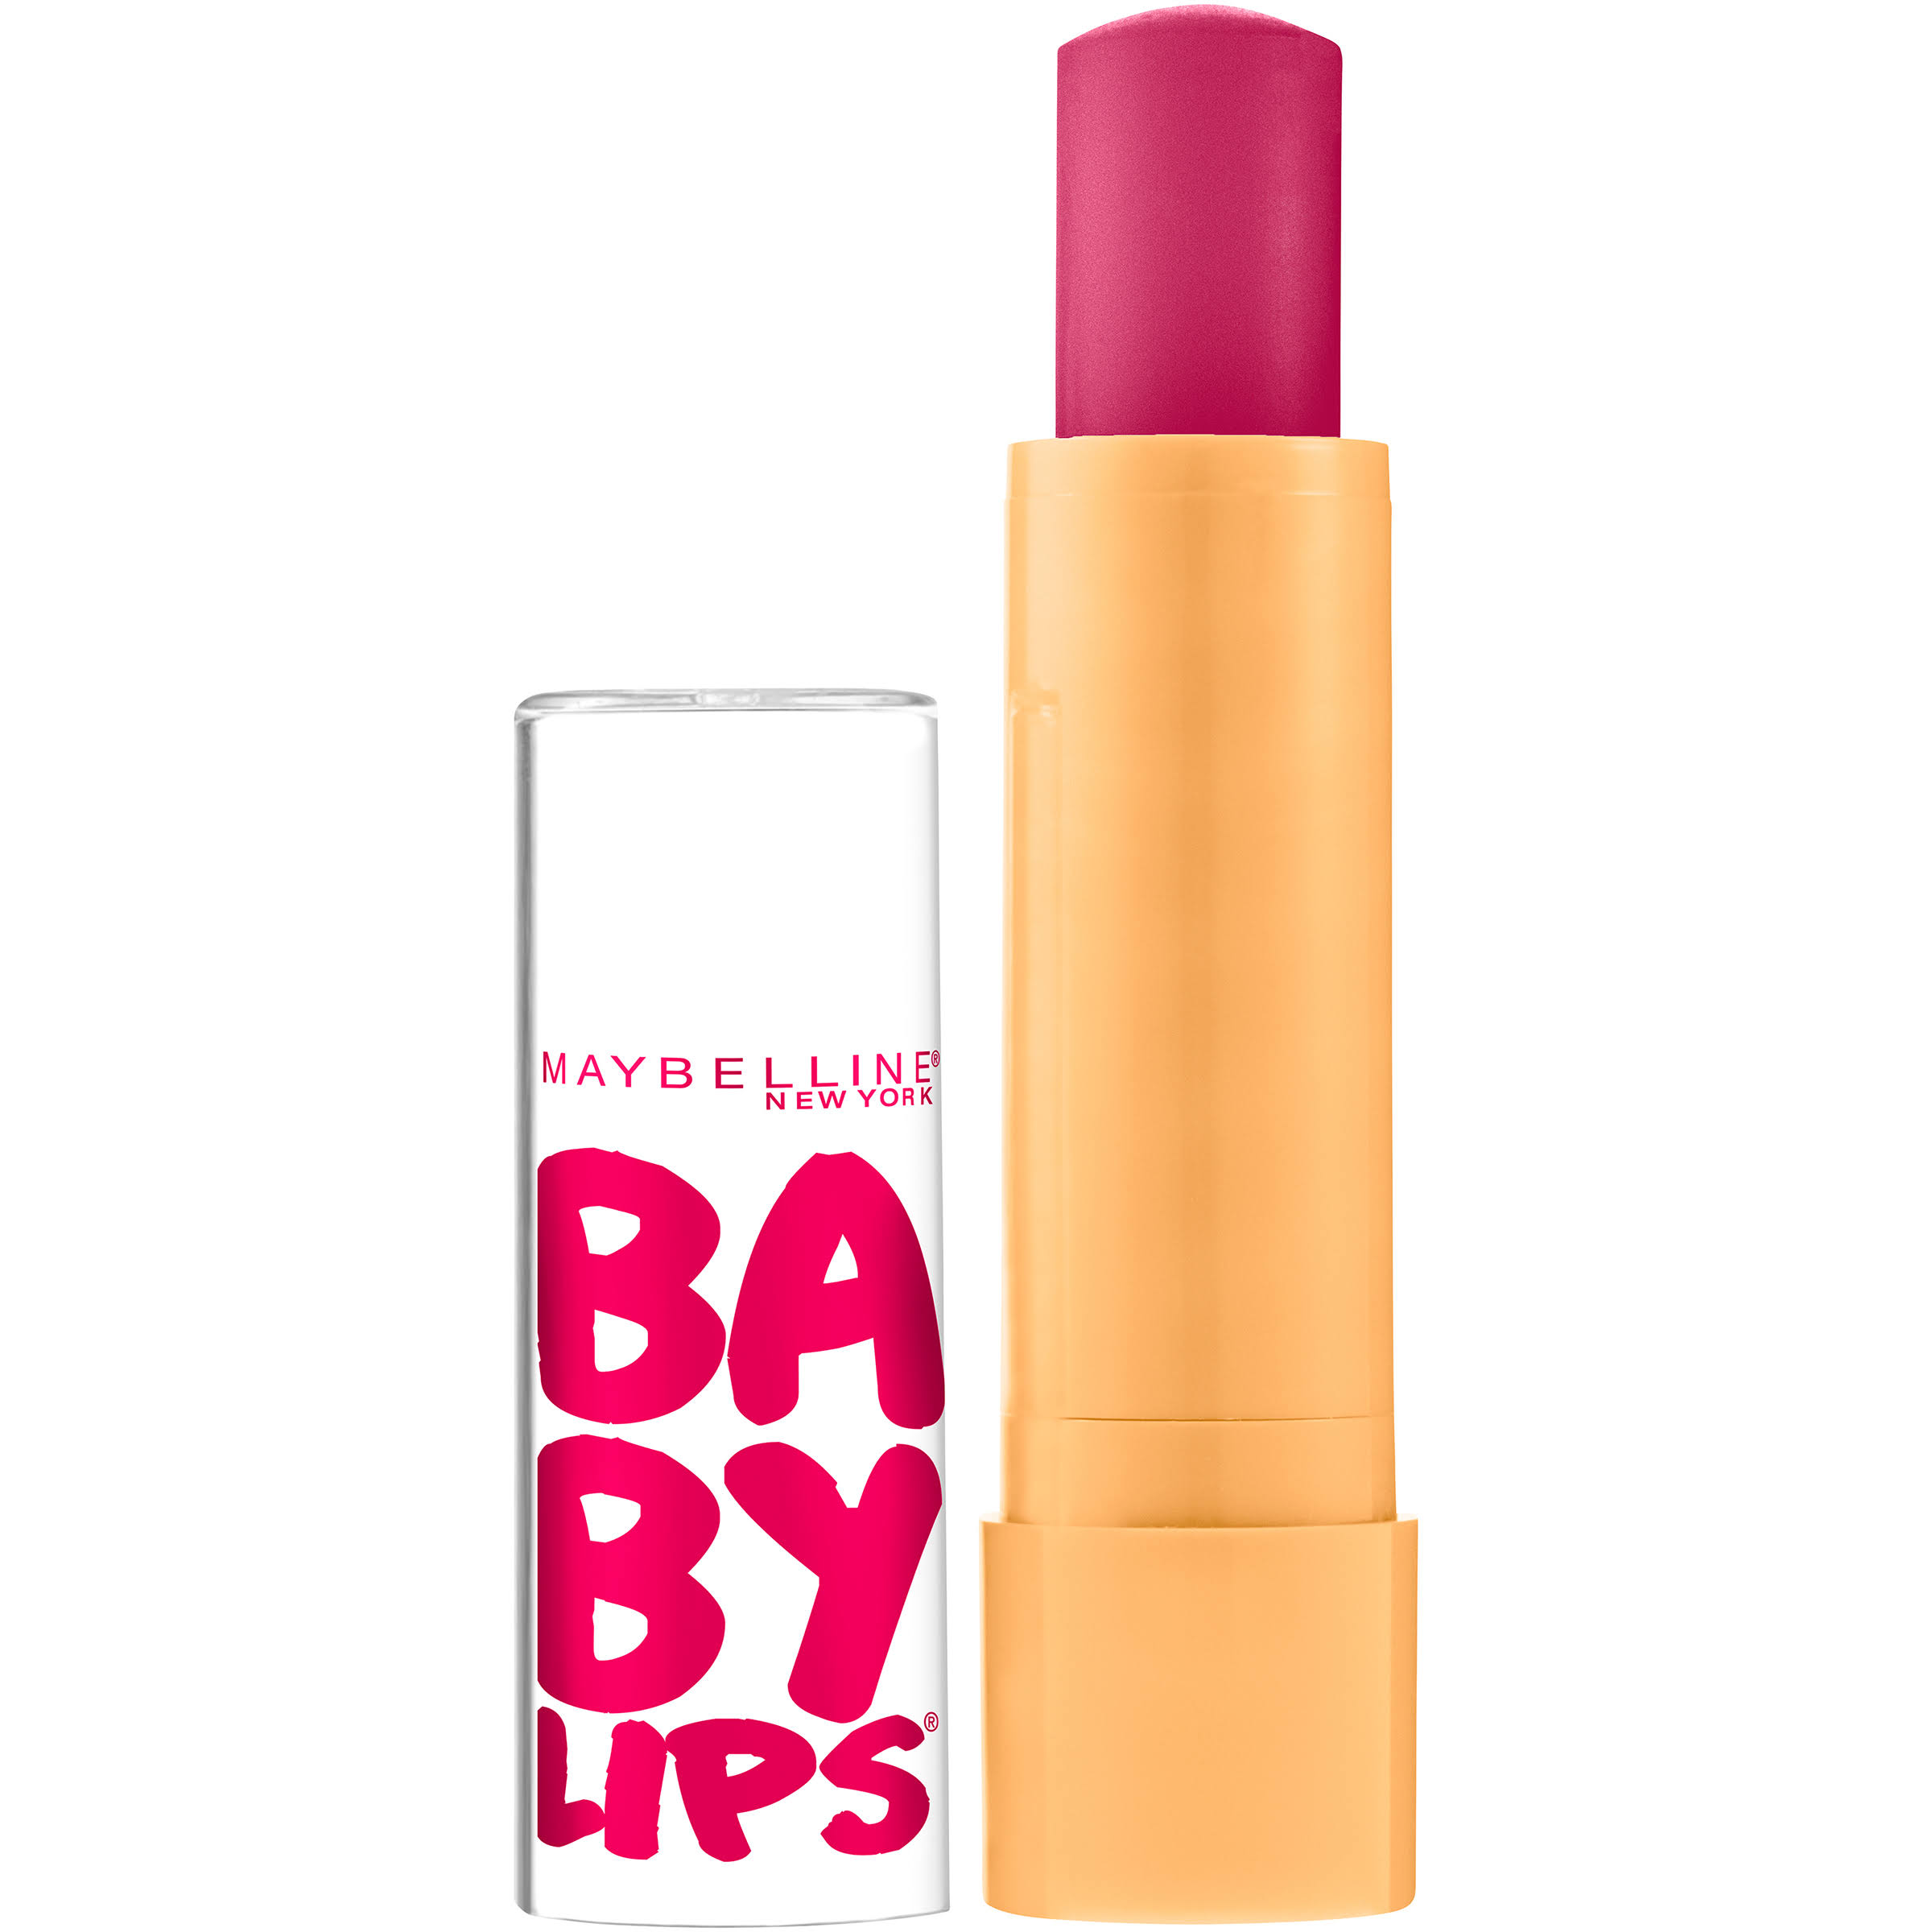 Maybelline Baby Lips Moisturizing Lip Balm - 15 Cherry Me, 4.4g